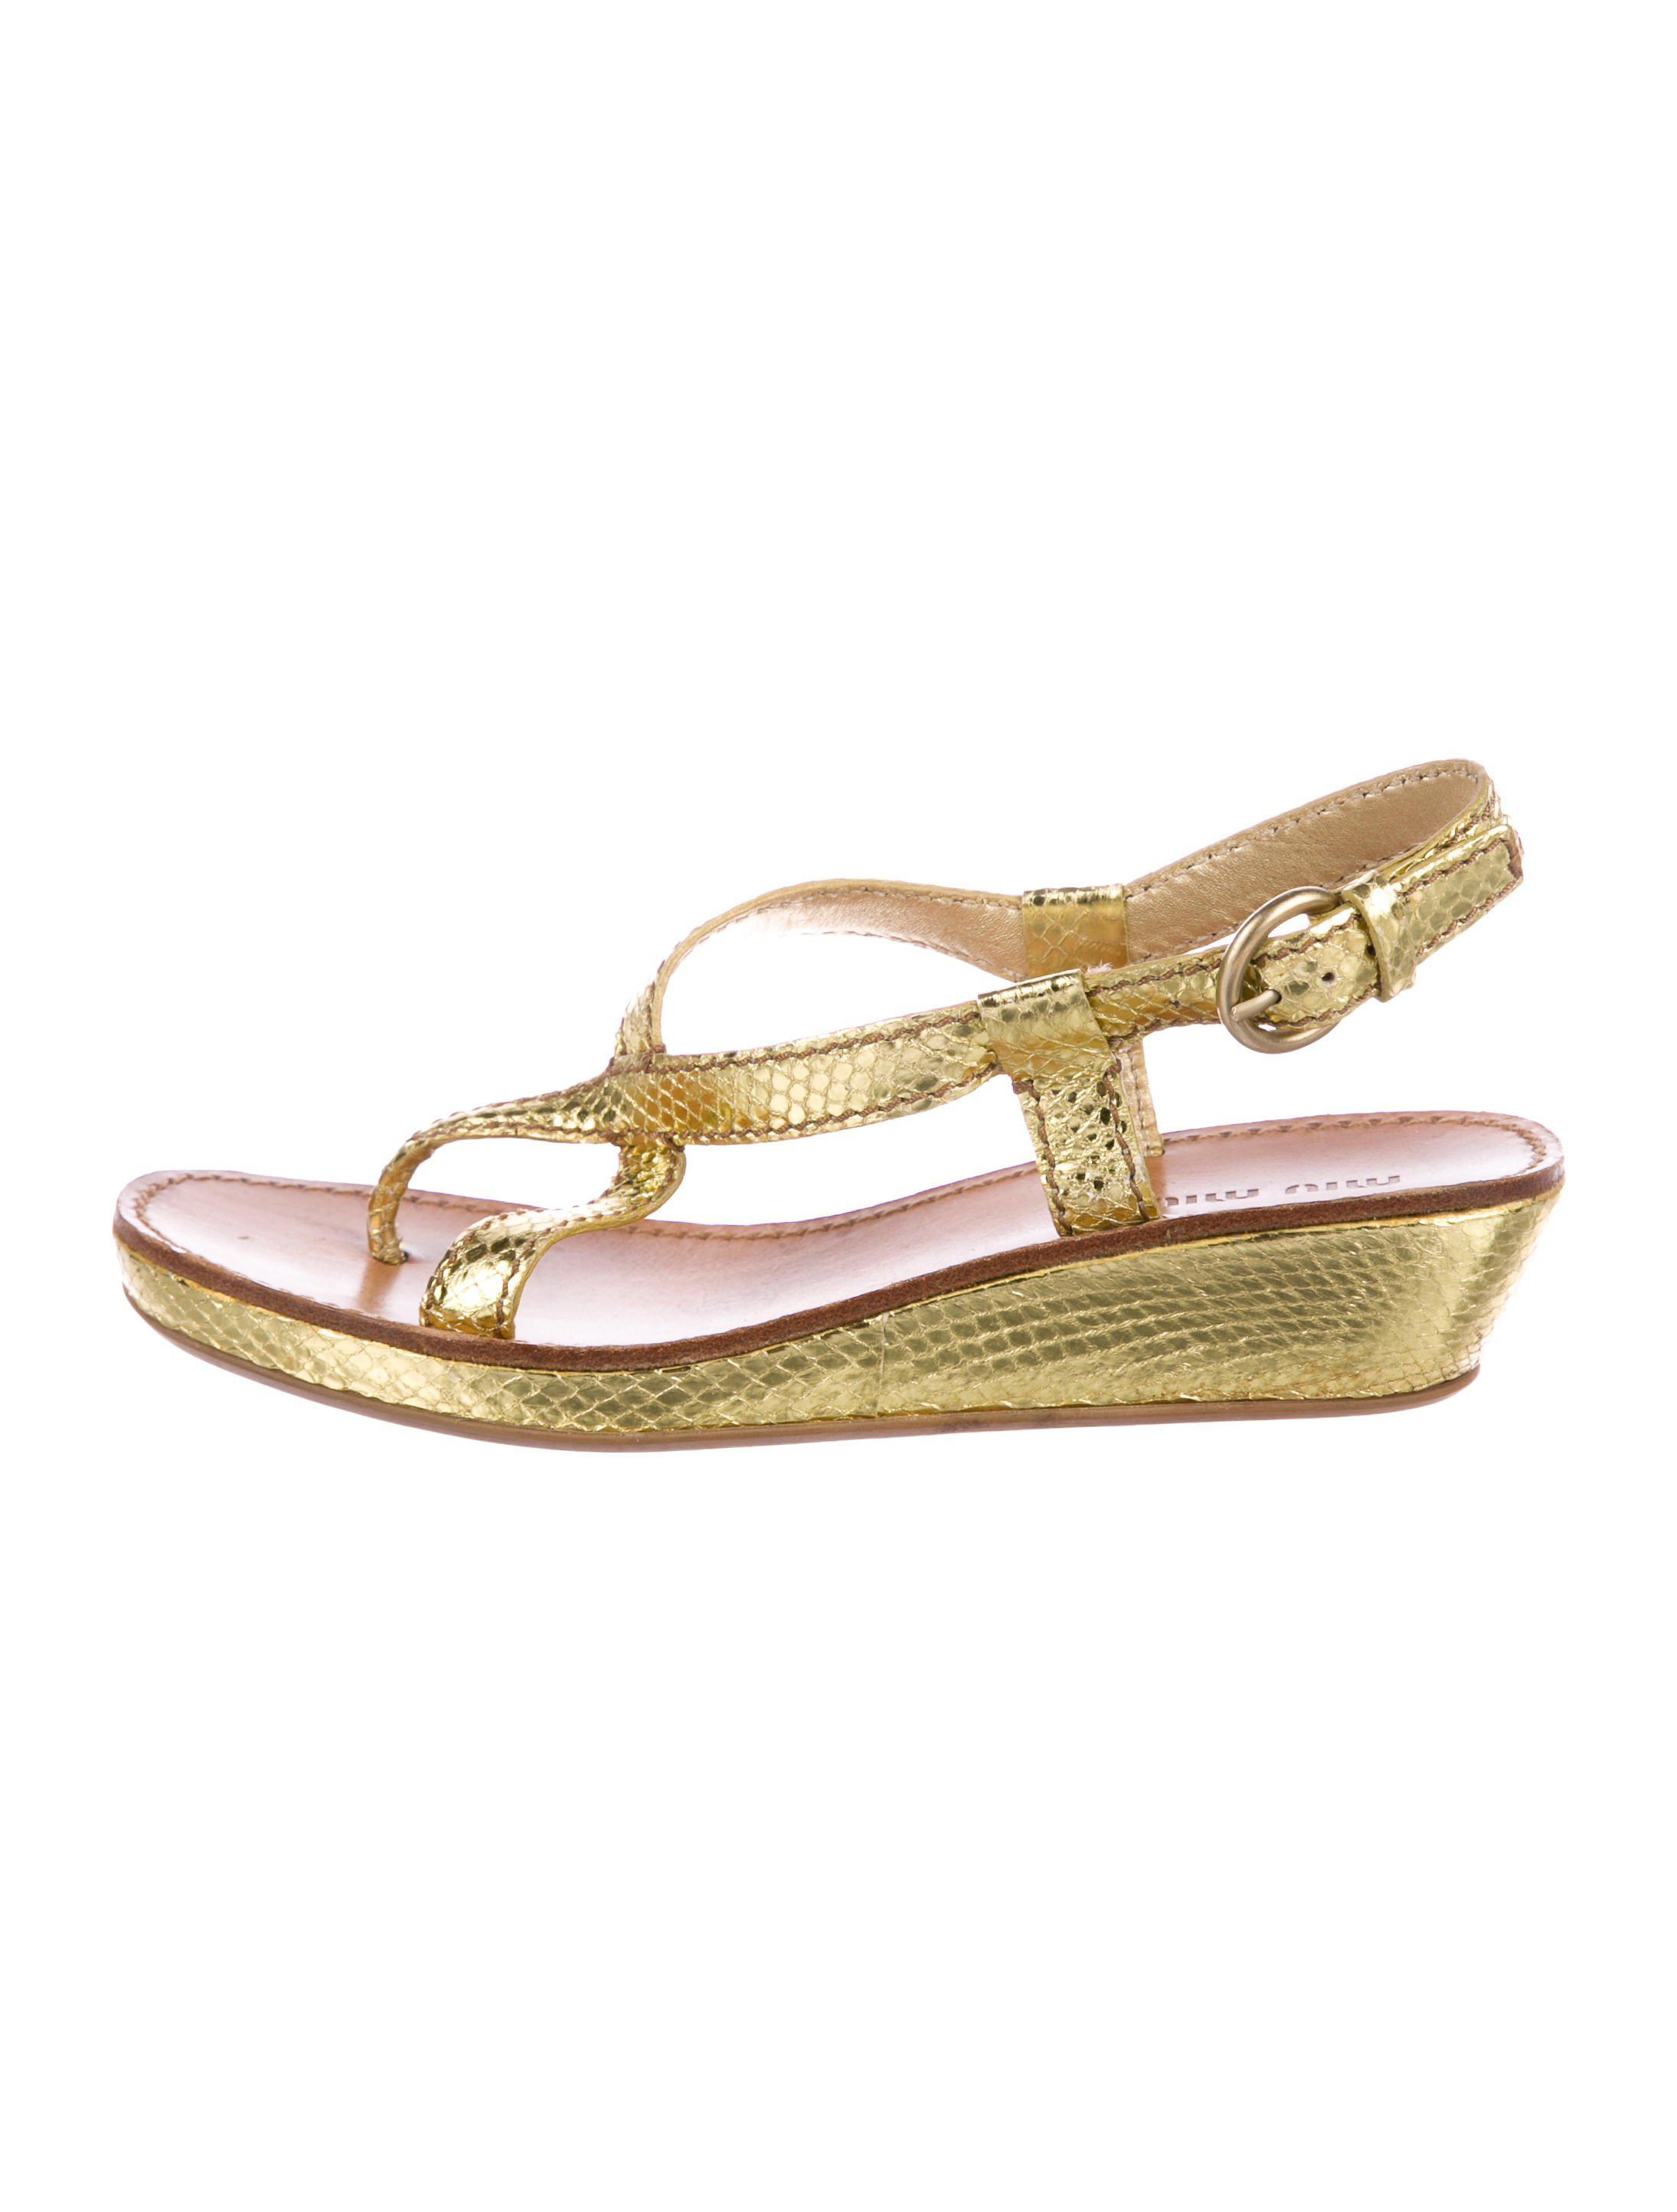 54694c604 Lyst - Miu Miu Miu Slingback Sandals Gold in Metallic